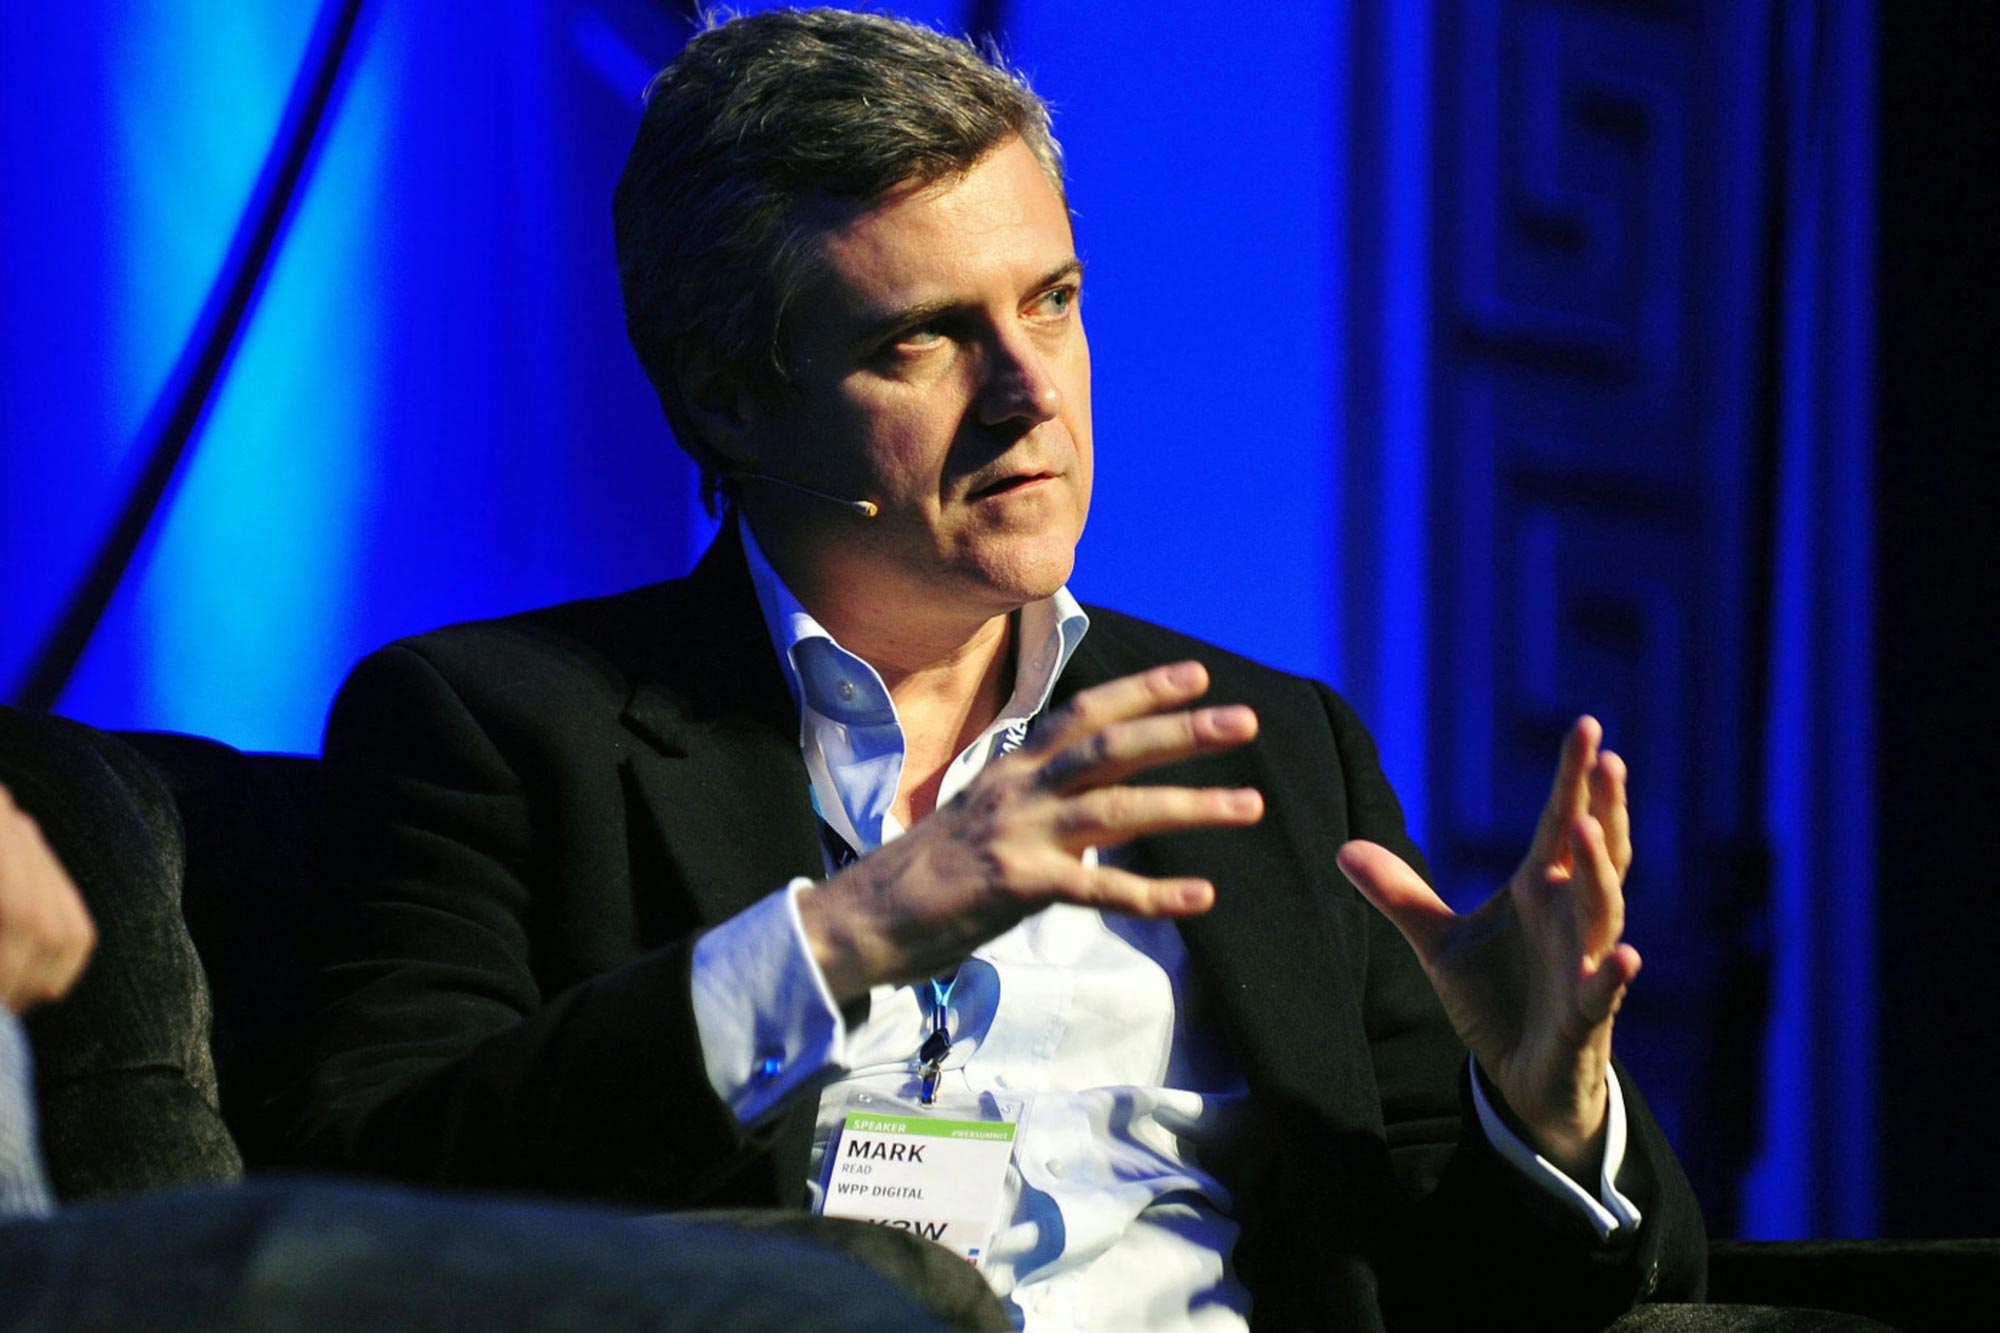 WPP CEO Mark Read about economic recovery, what clients want and how recent hires and restructuring fit its game plan